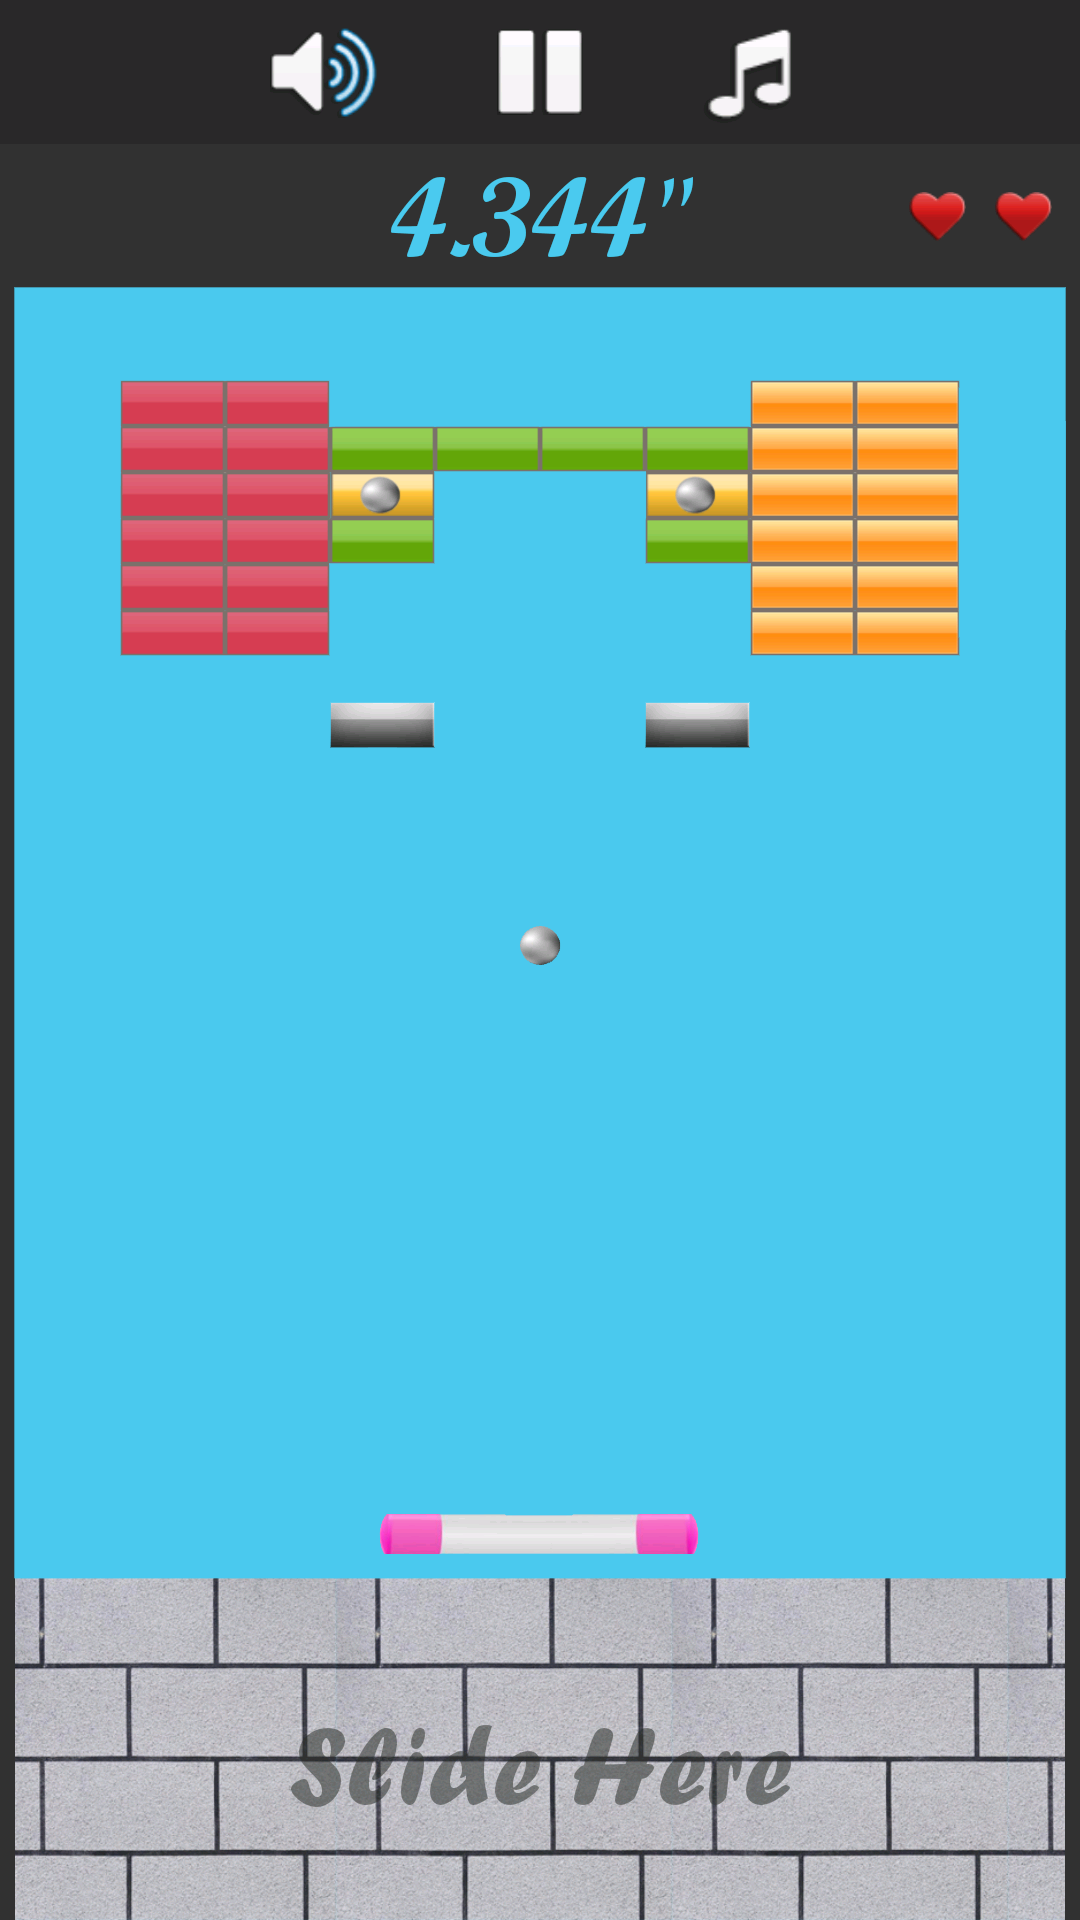 Brick Breaker Game For Kindle Fire Free Classic Arcade